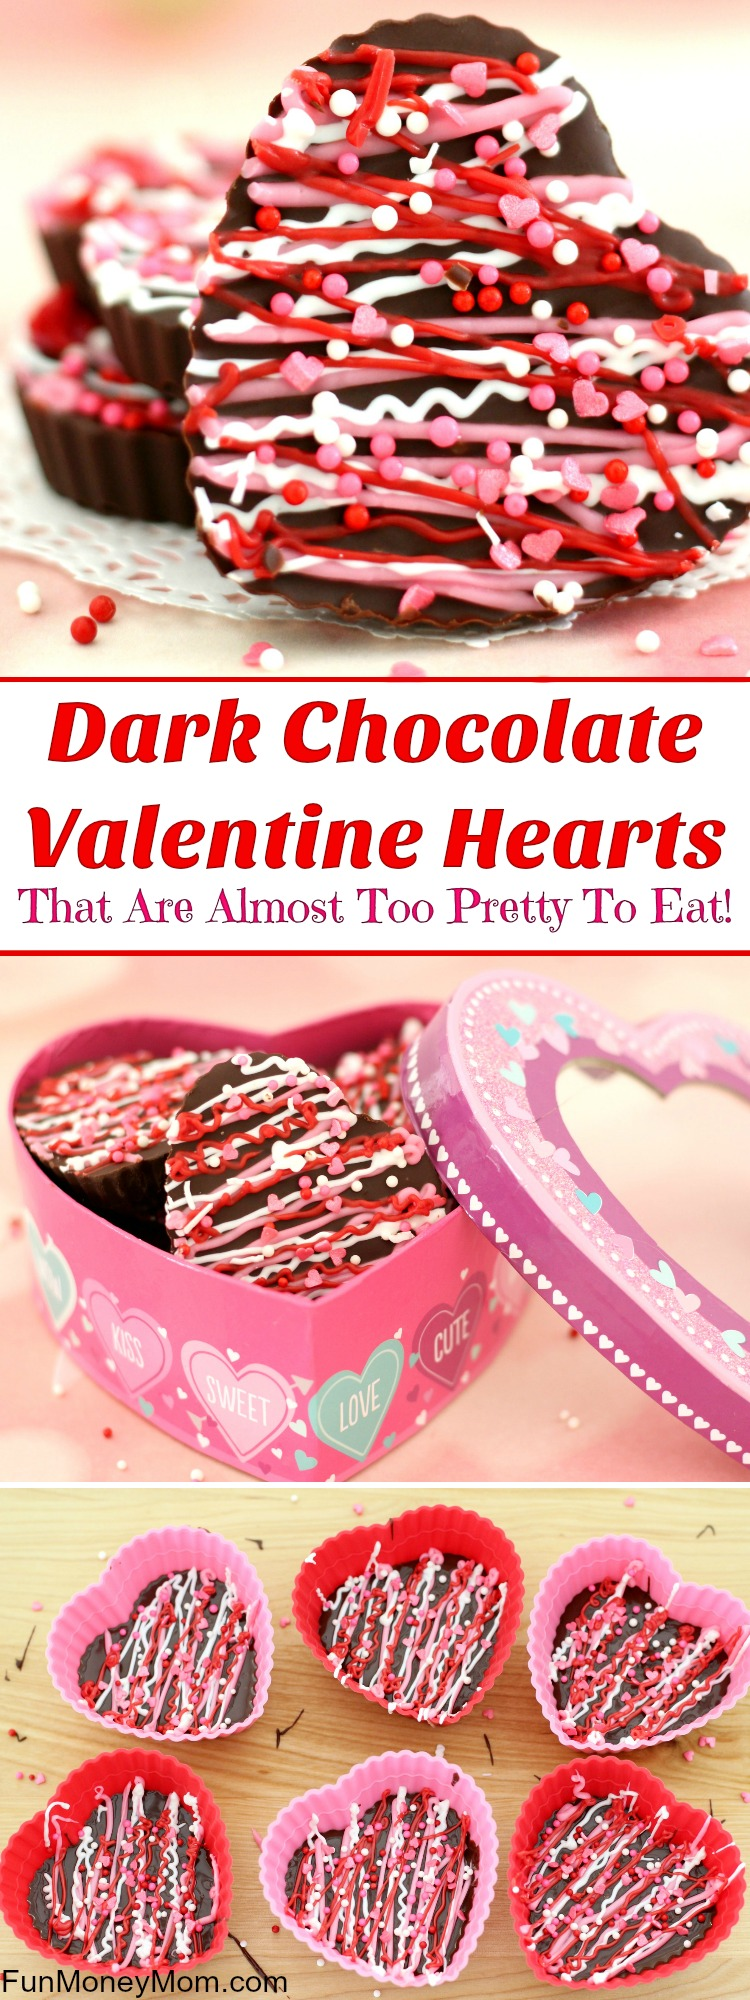 Dark Chocolate Valentine Hearts Pinterest